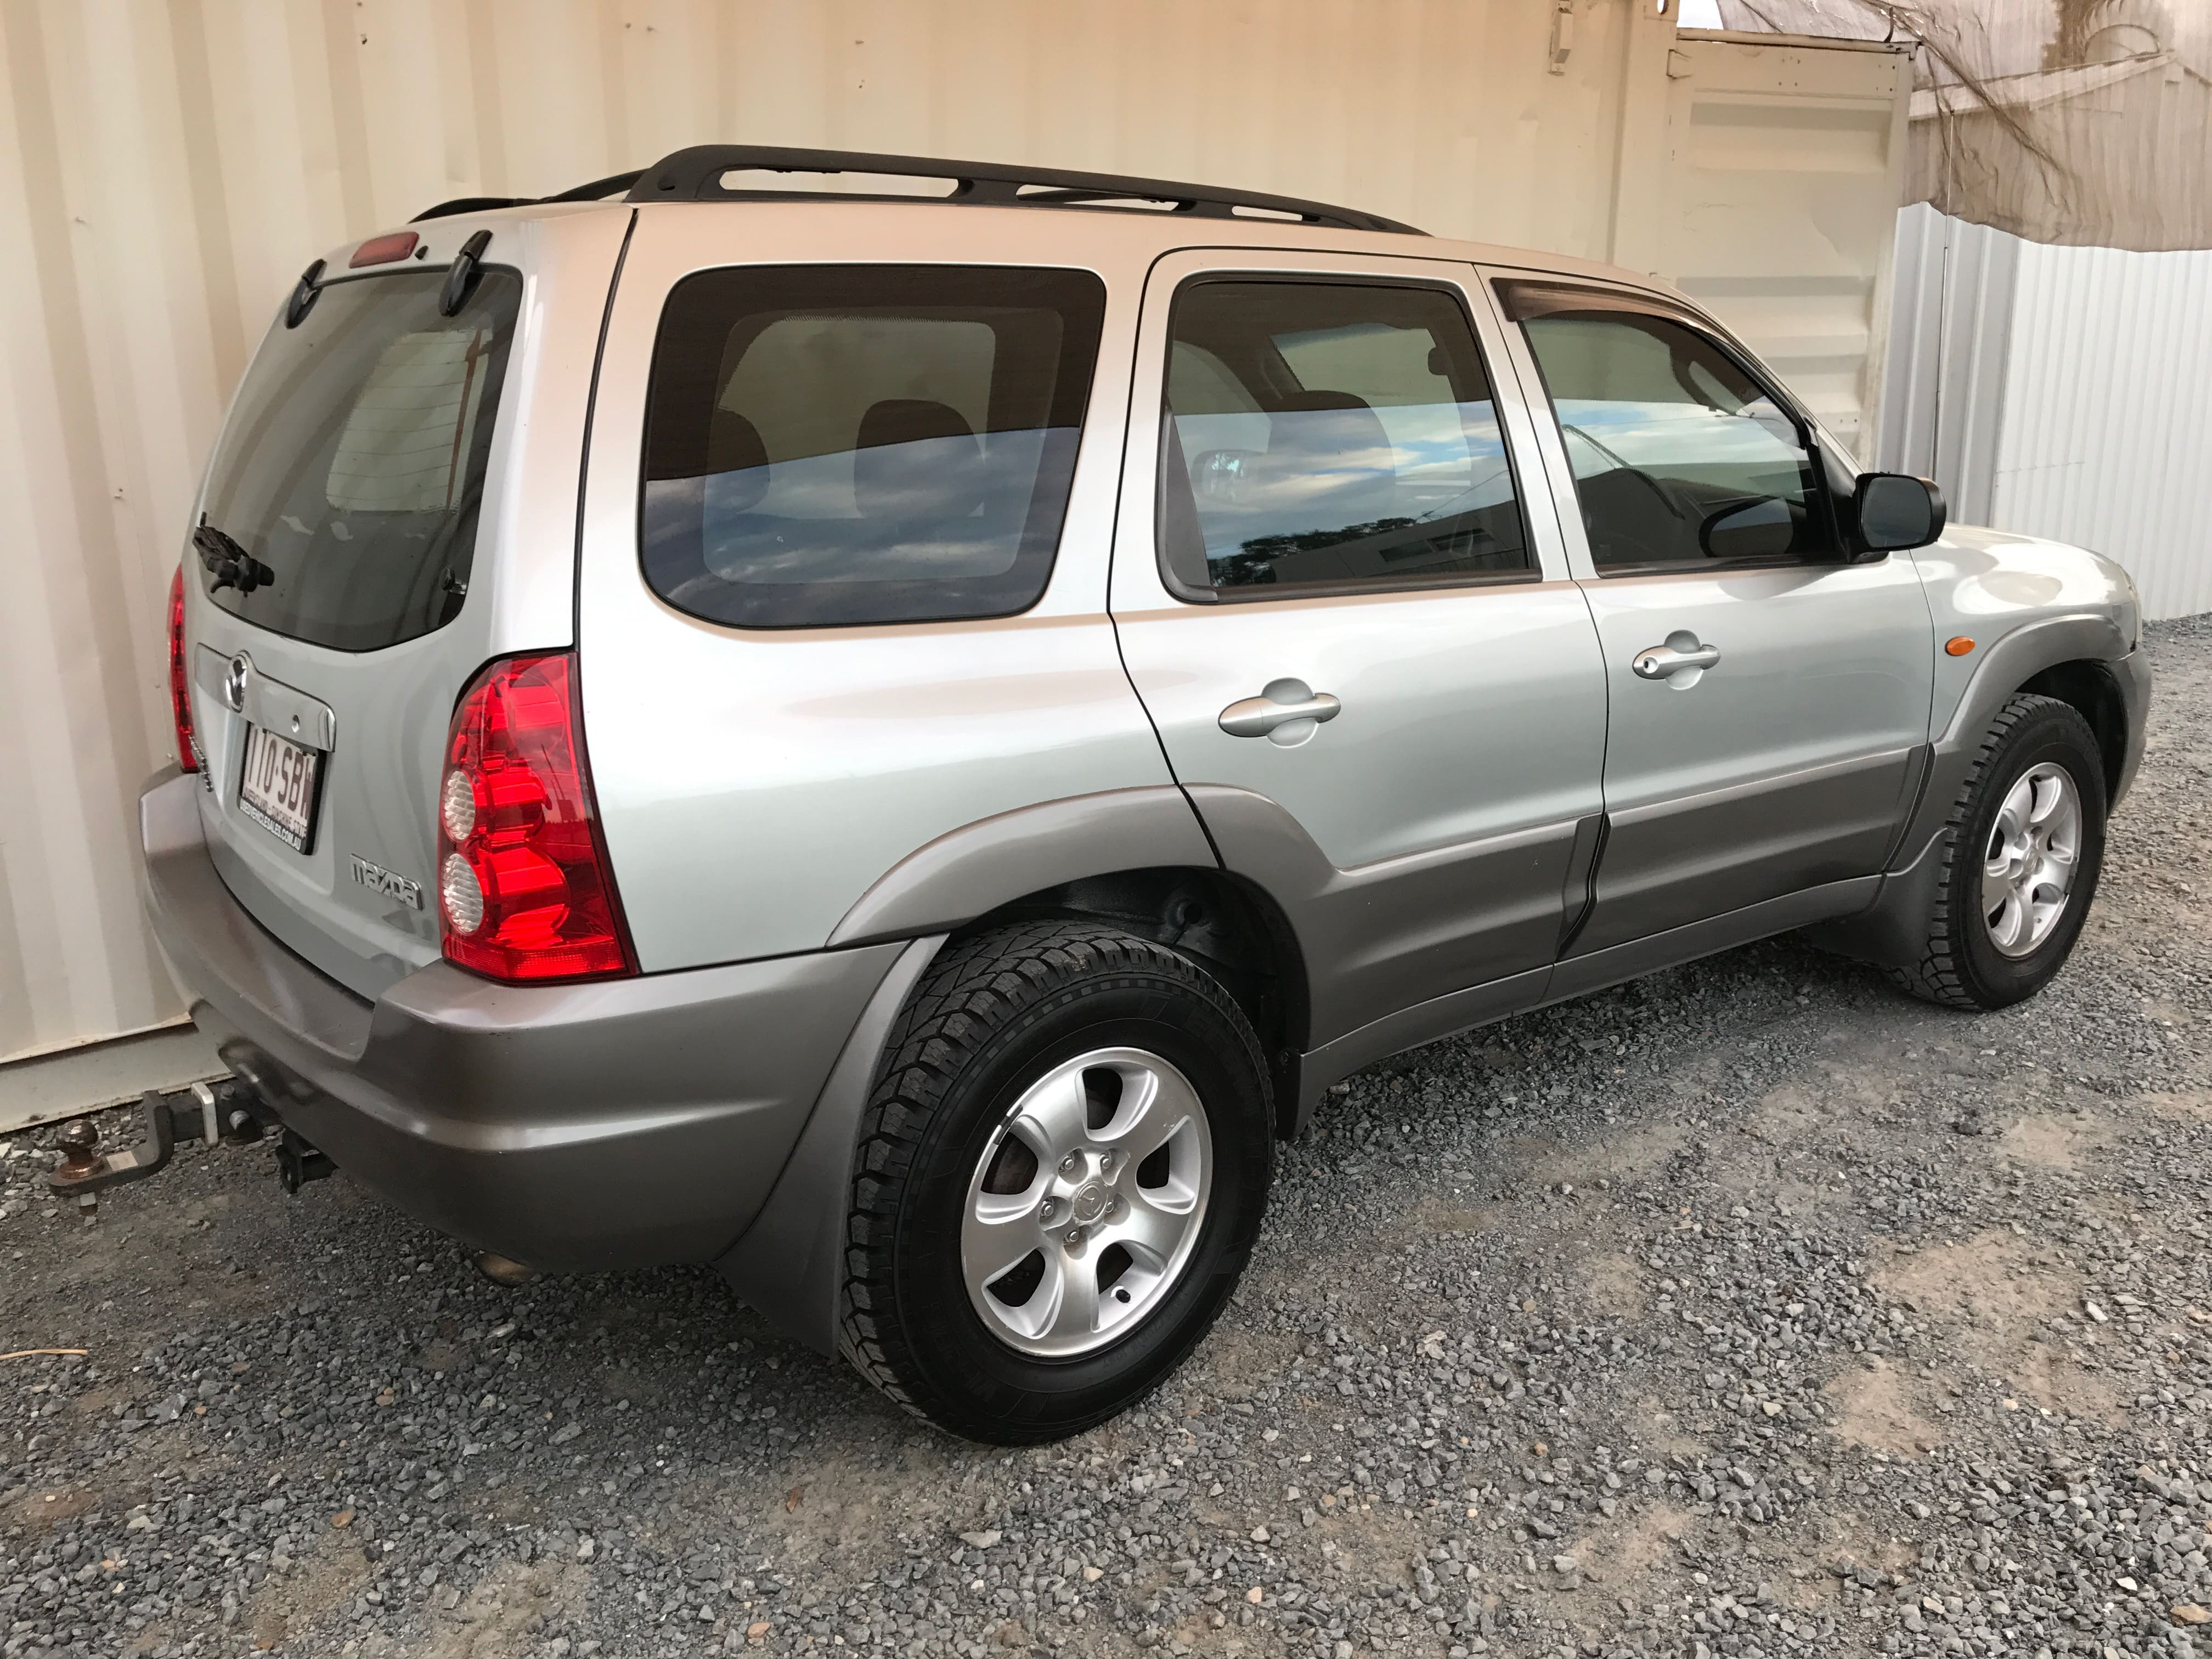 sold automatic 4x4 suv 06 mazda tribute used vehicle sales. Black Bedroom Furniture Sets. Home Design Ideas